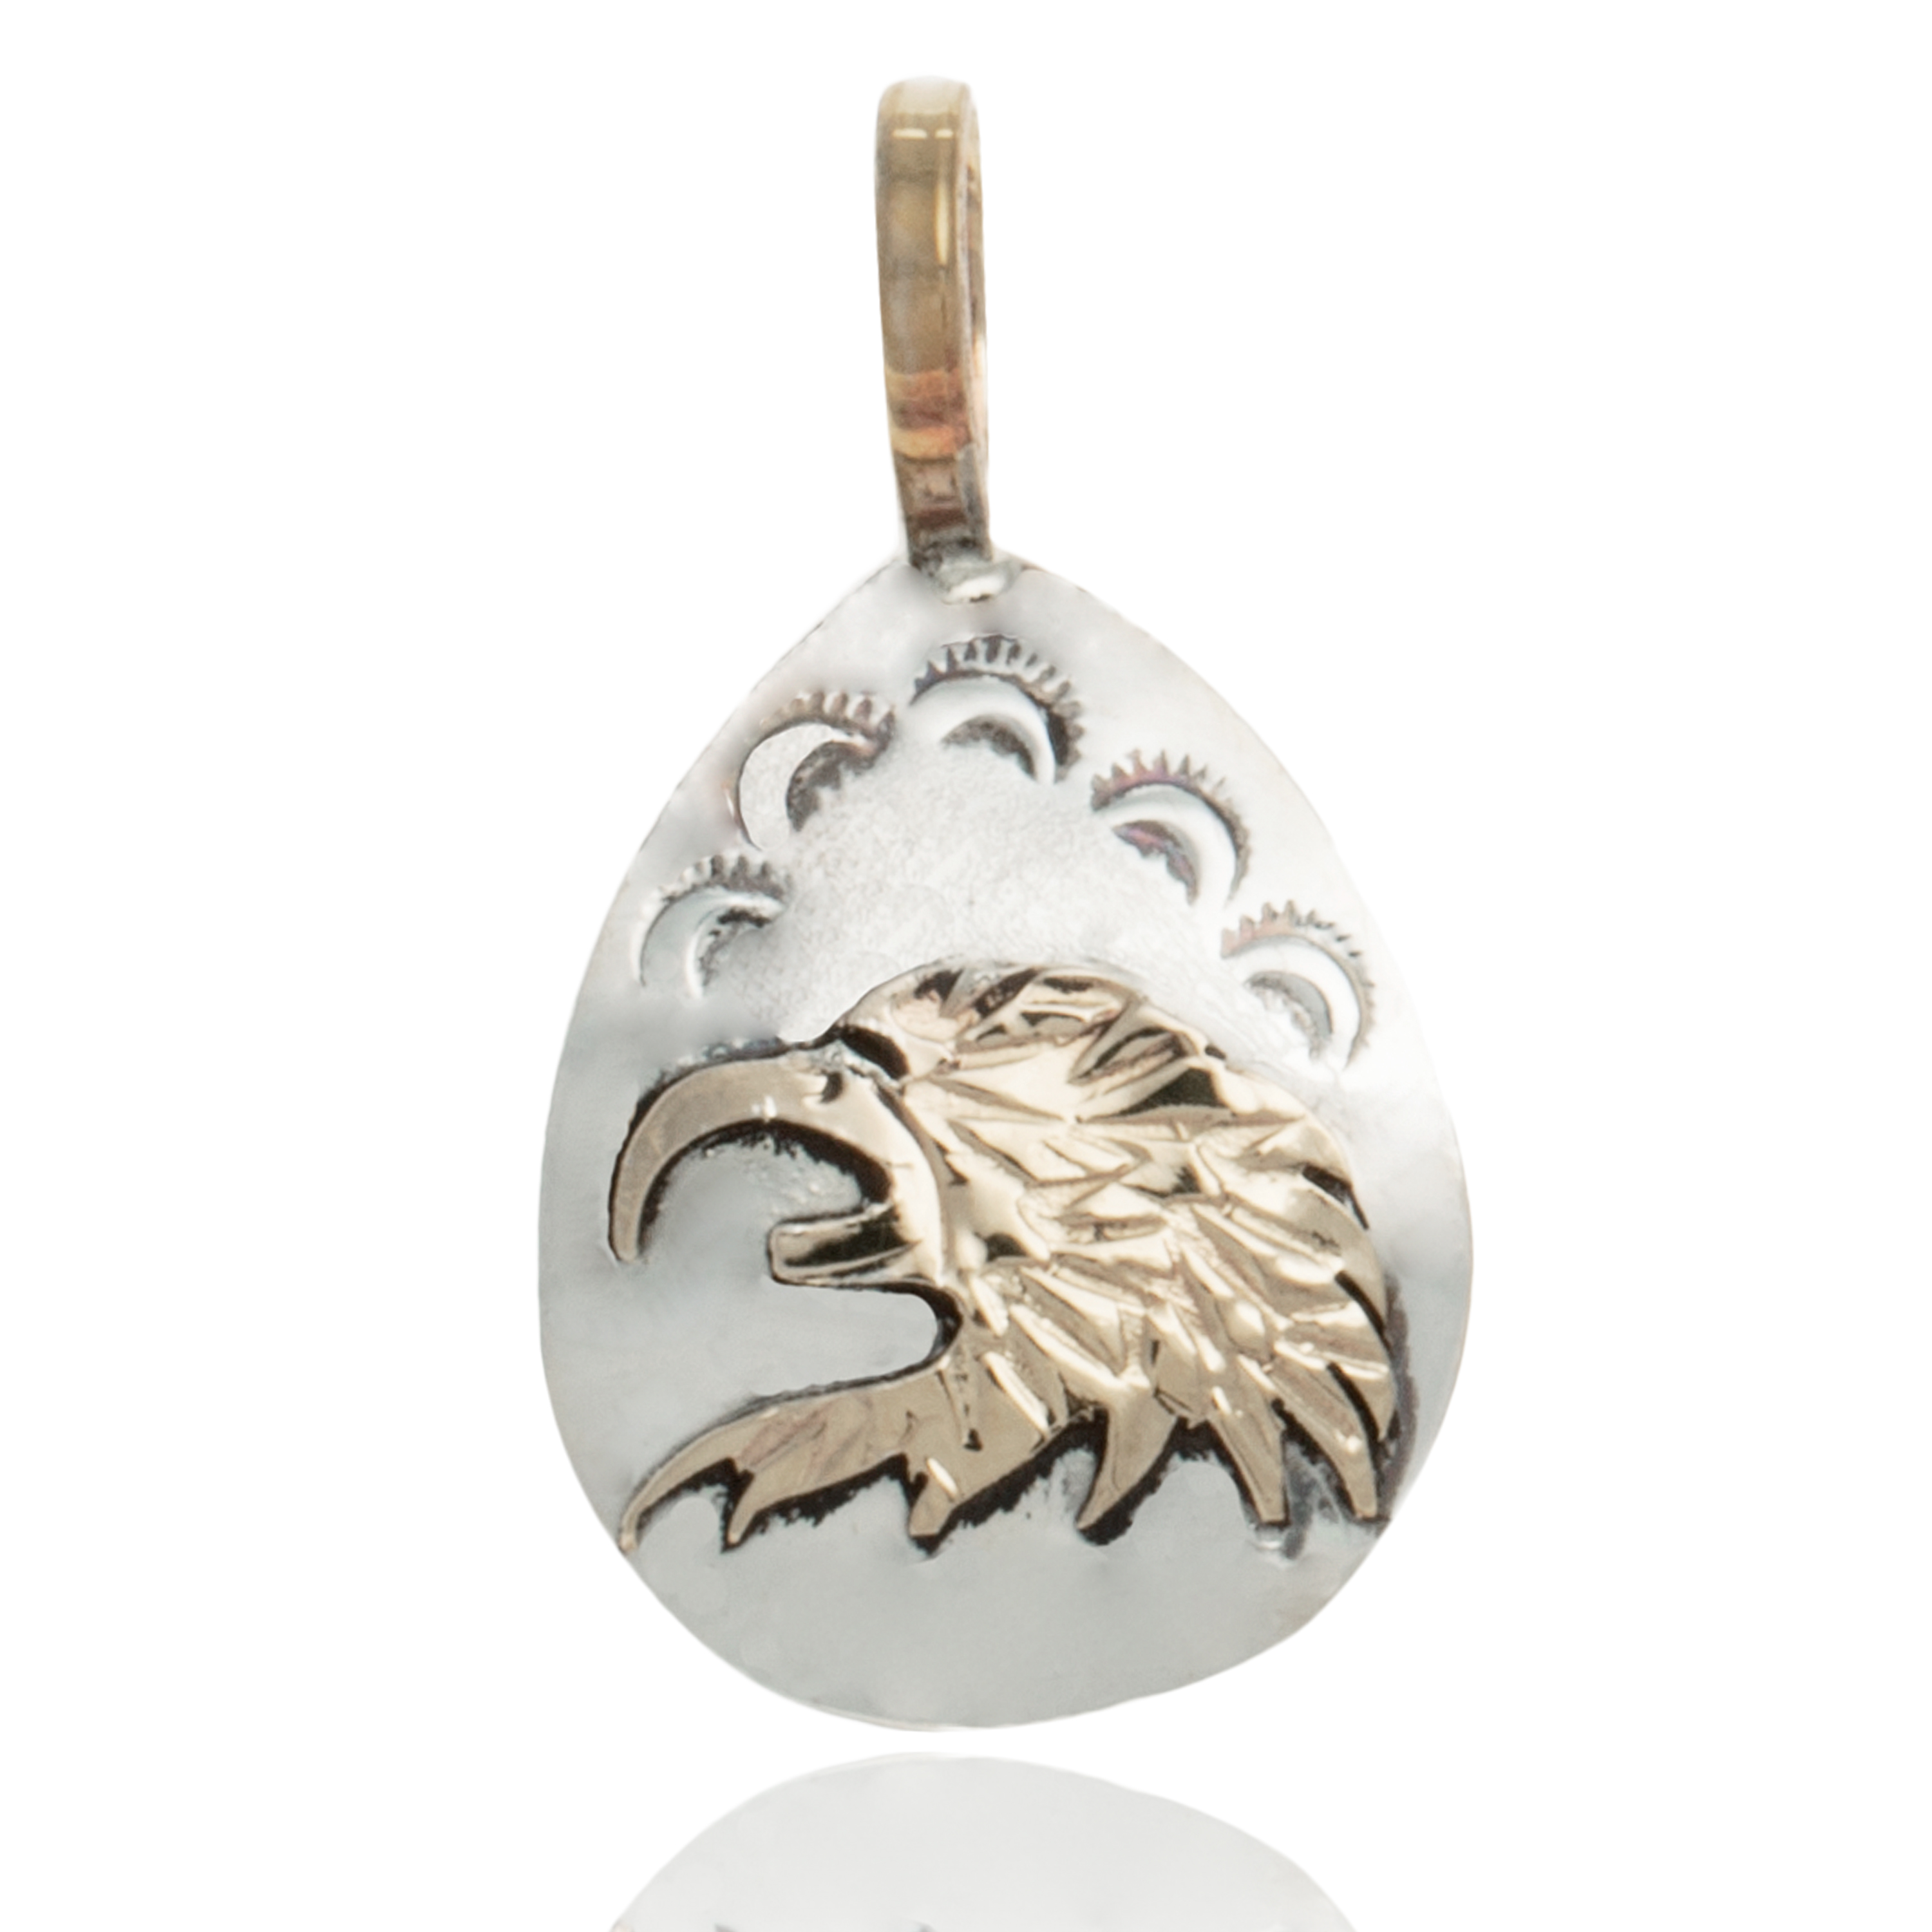 12kt Gold Filled and .925 Sterling Silver Eagle Head Handmade Certified Authentic Navajo Native American Pendant 24476 All Products NB151219025514 24476 (by LomaSiiva)